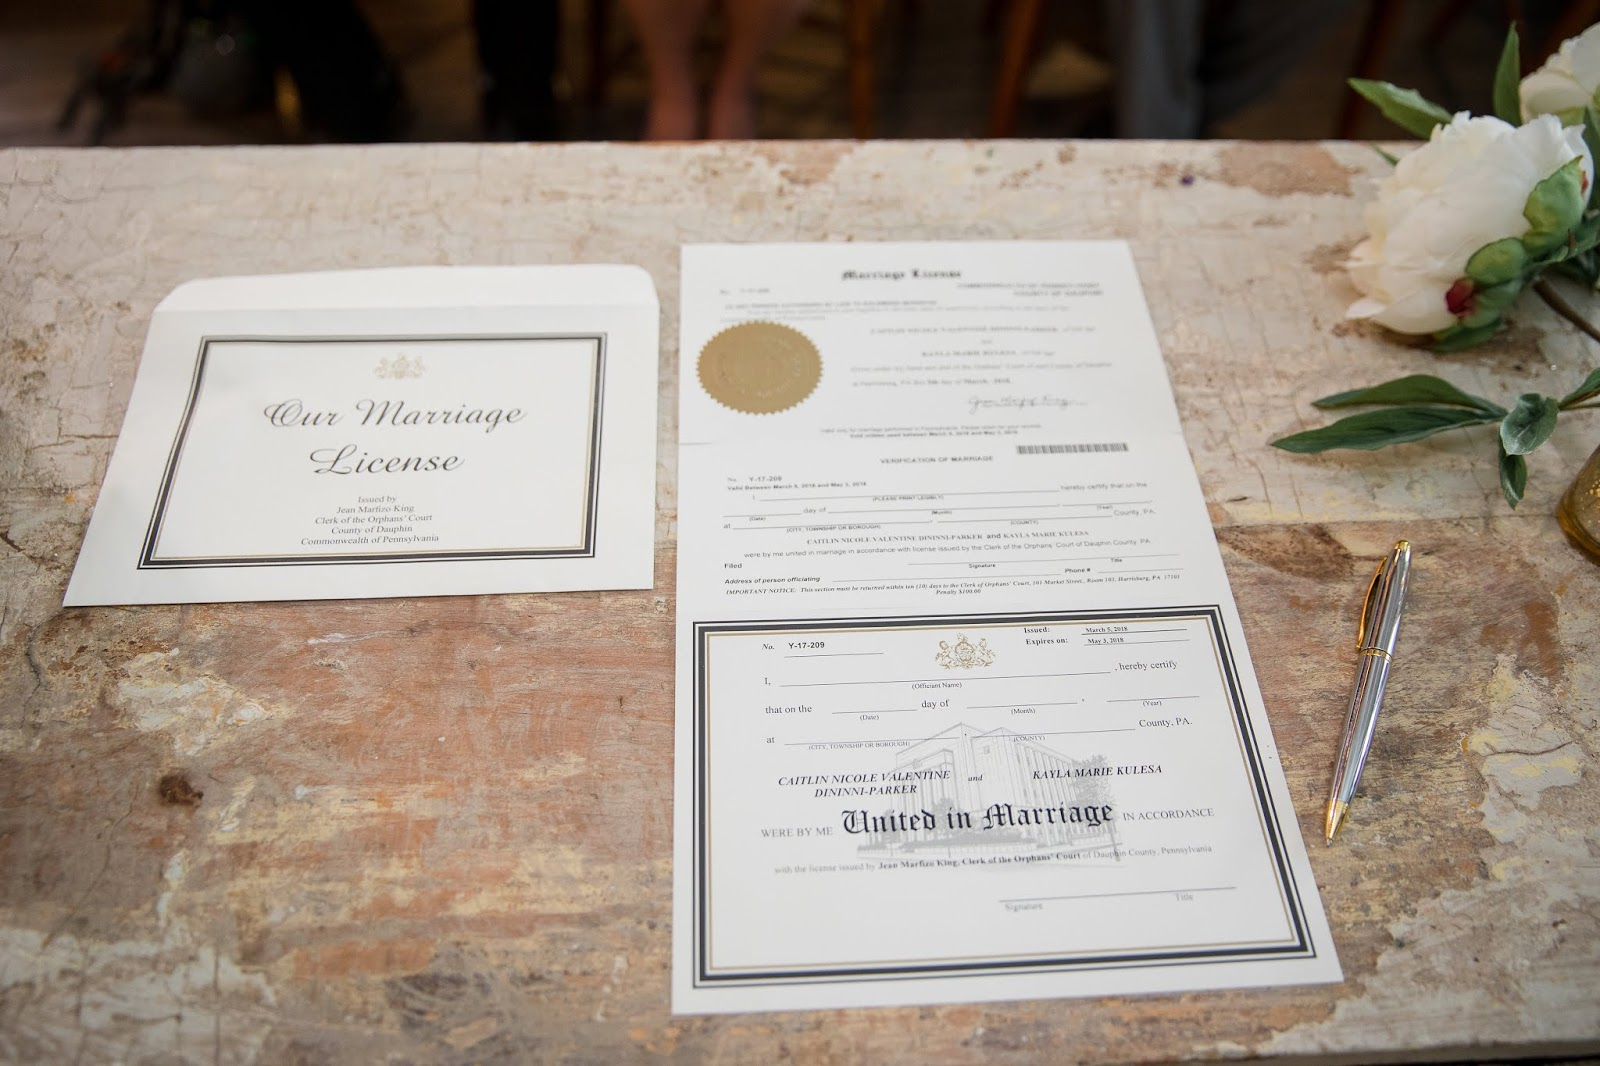 More About Marriage Licenses